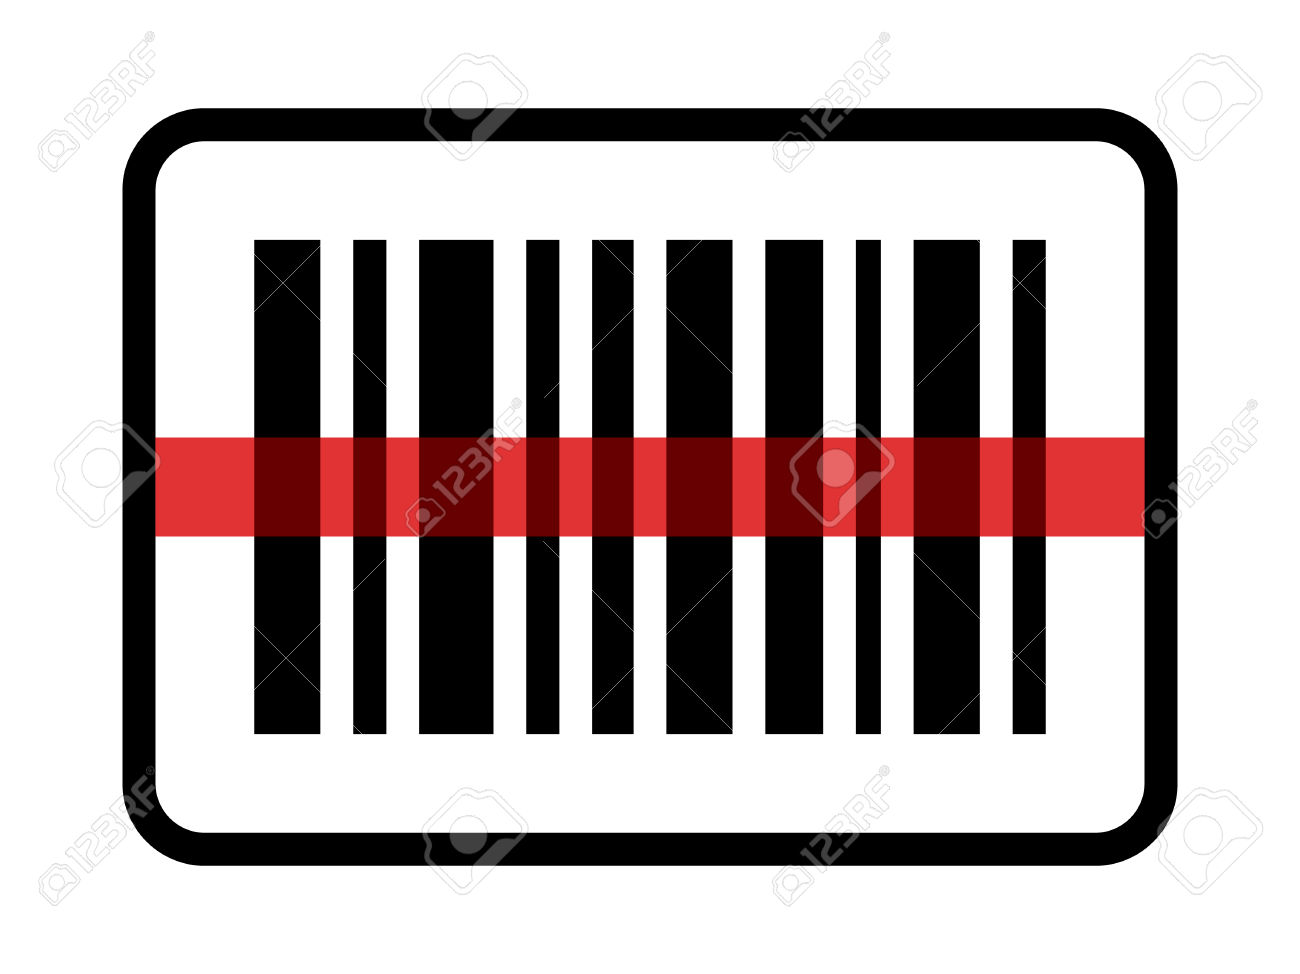 Red Laser Scanning Inventory Barcode / Bar Code Line Art Icon.